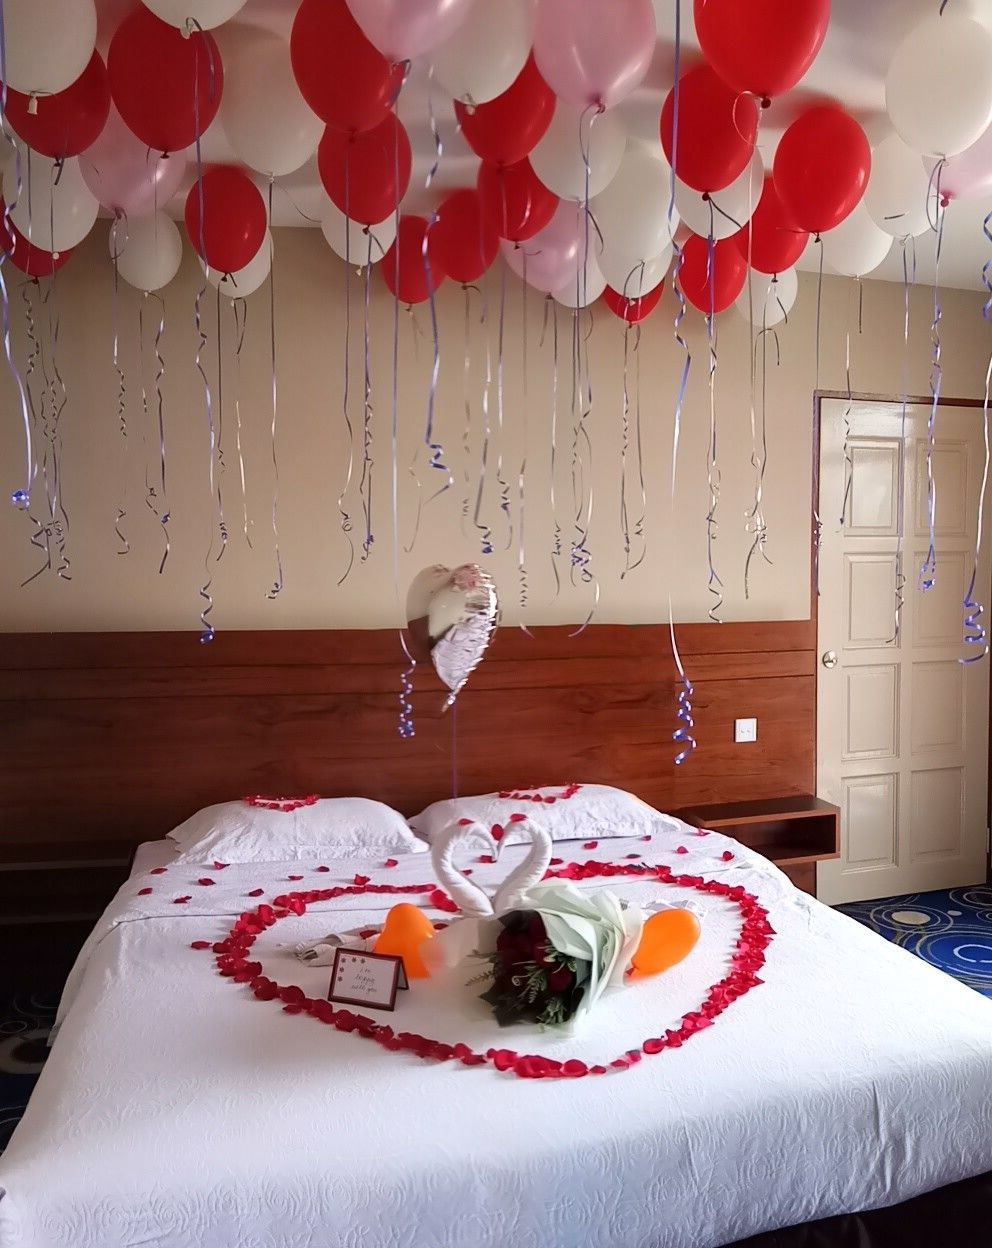 Room Decor With Balloon Helium Balloons Ideas Tel Beautiful Flowers